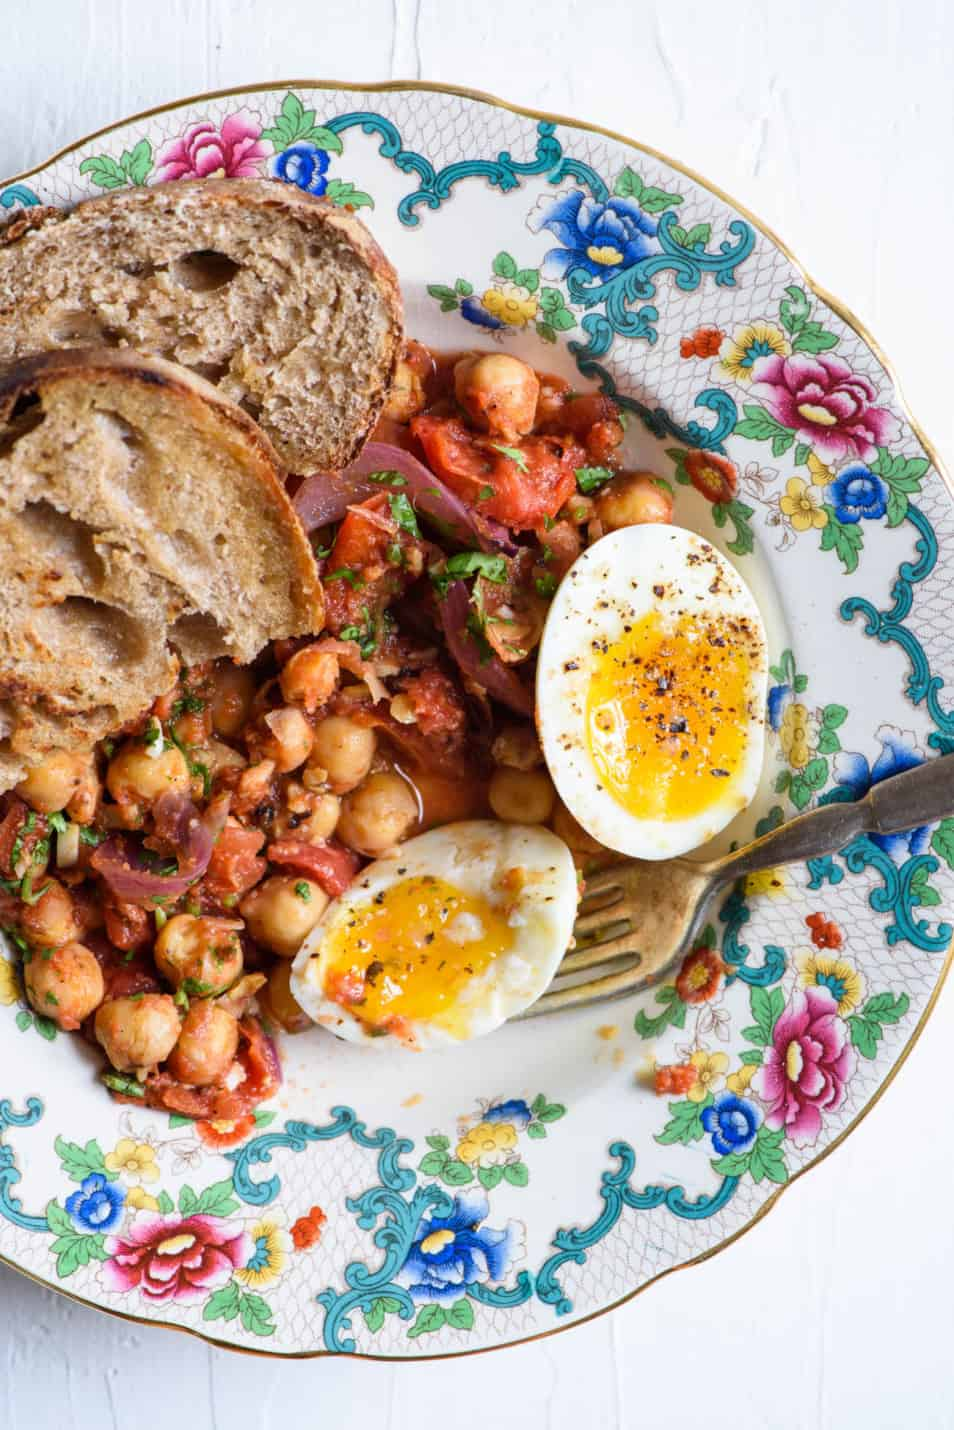 Curried chickpea breakfast hash on a colorful vintage plate with soft-boiled eggs and sourdough toast